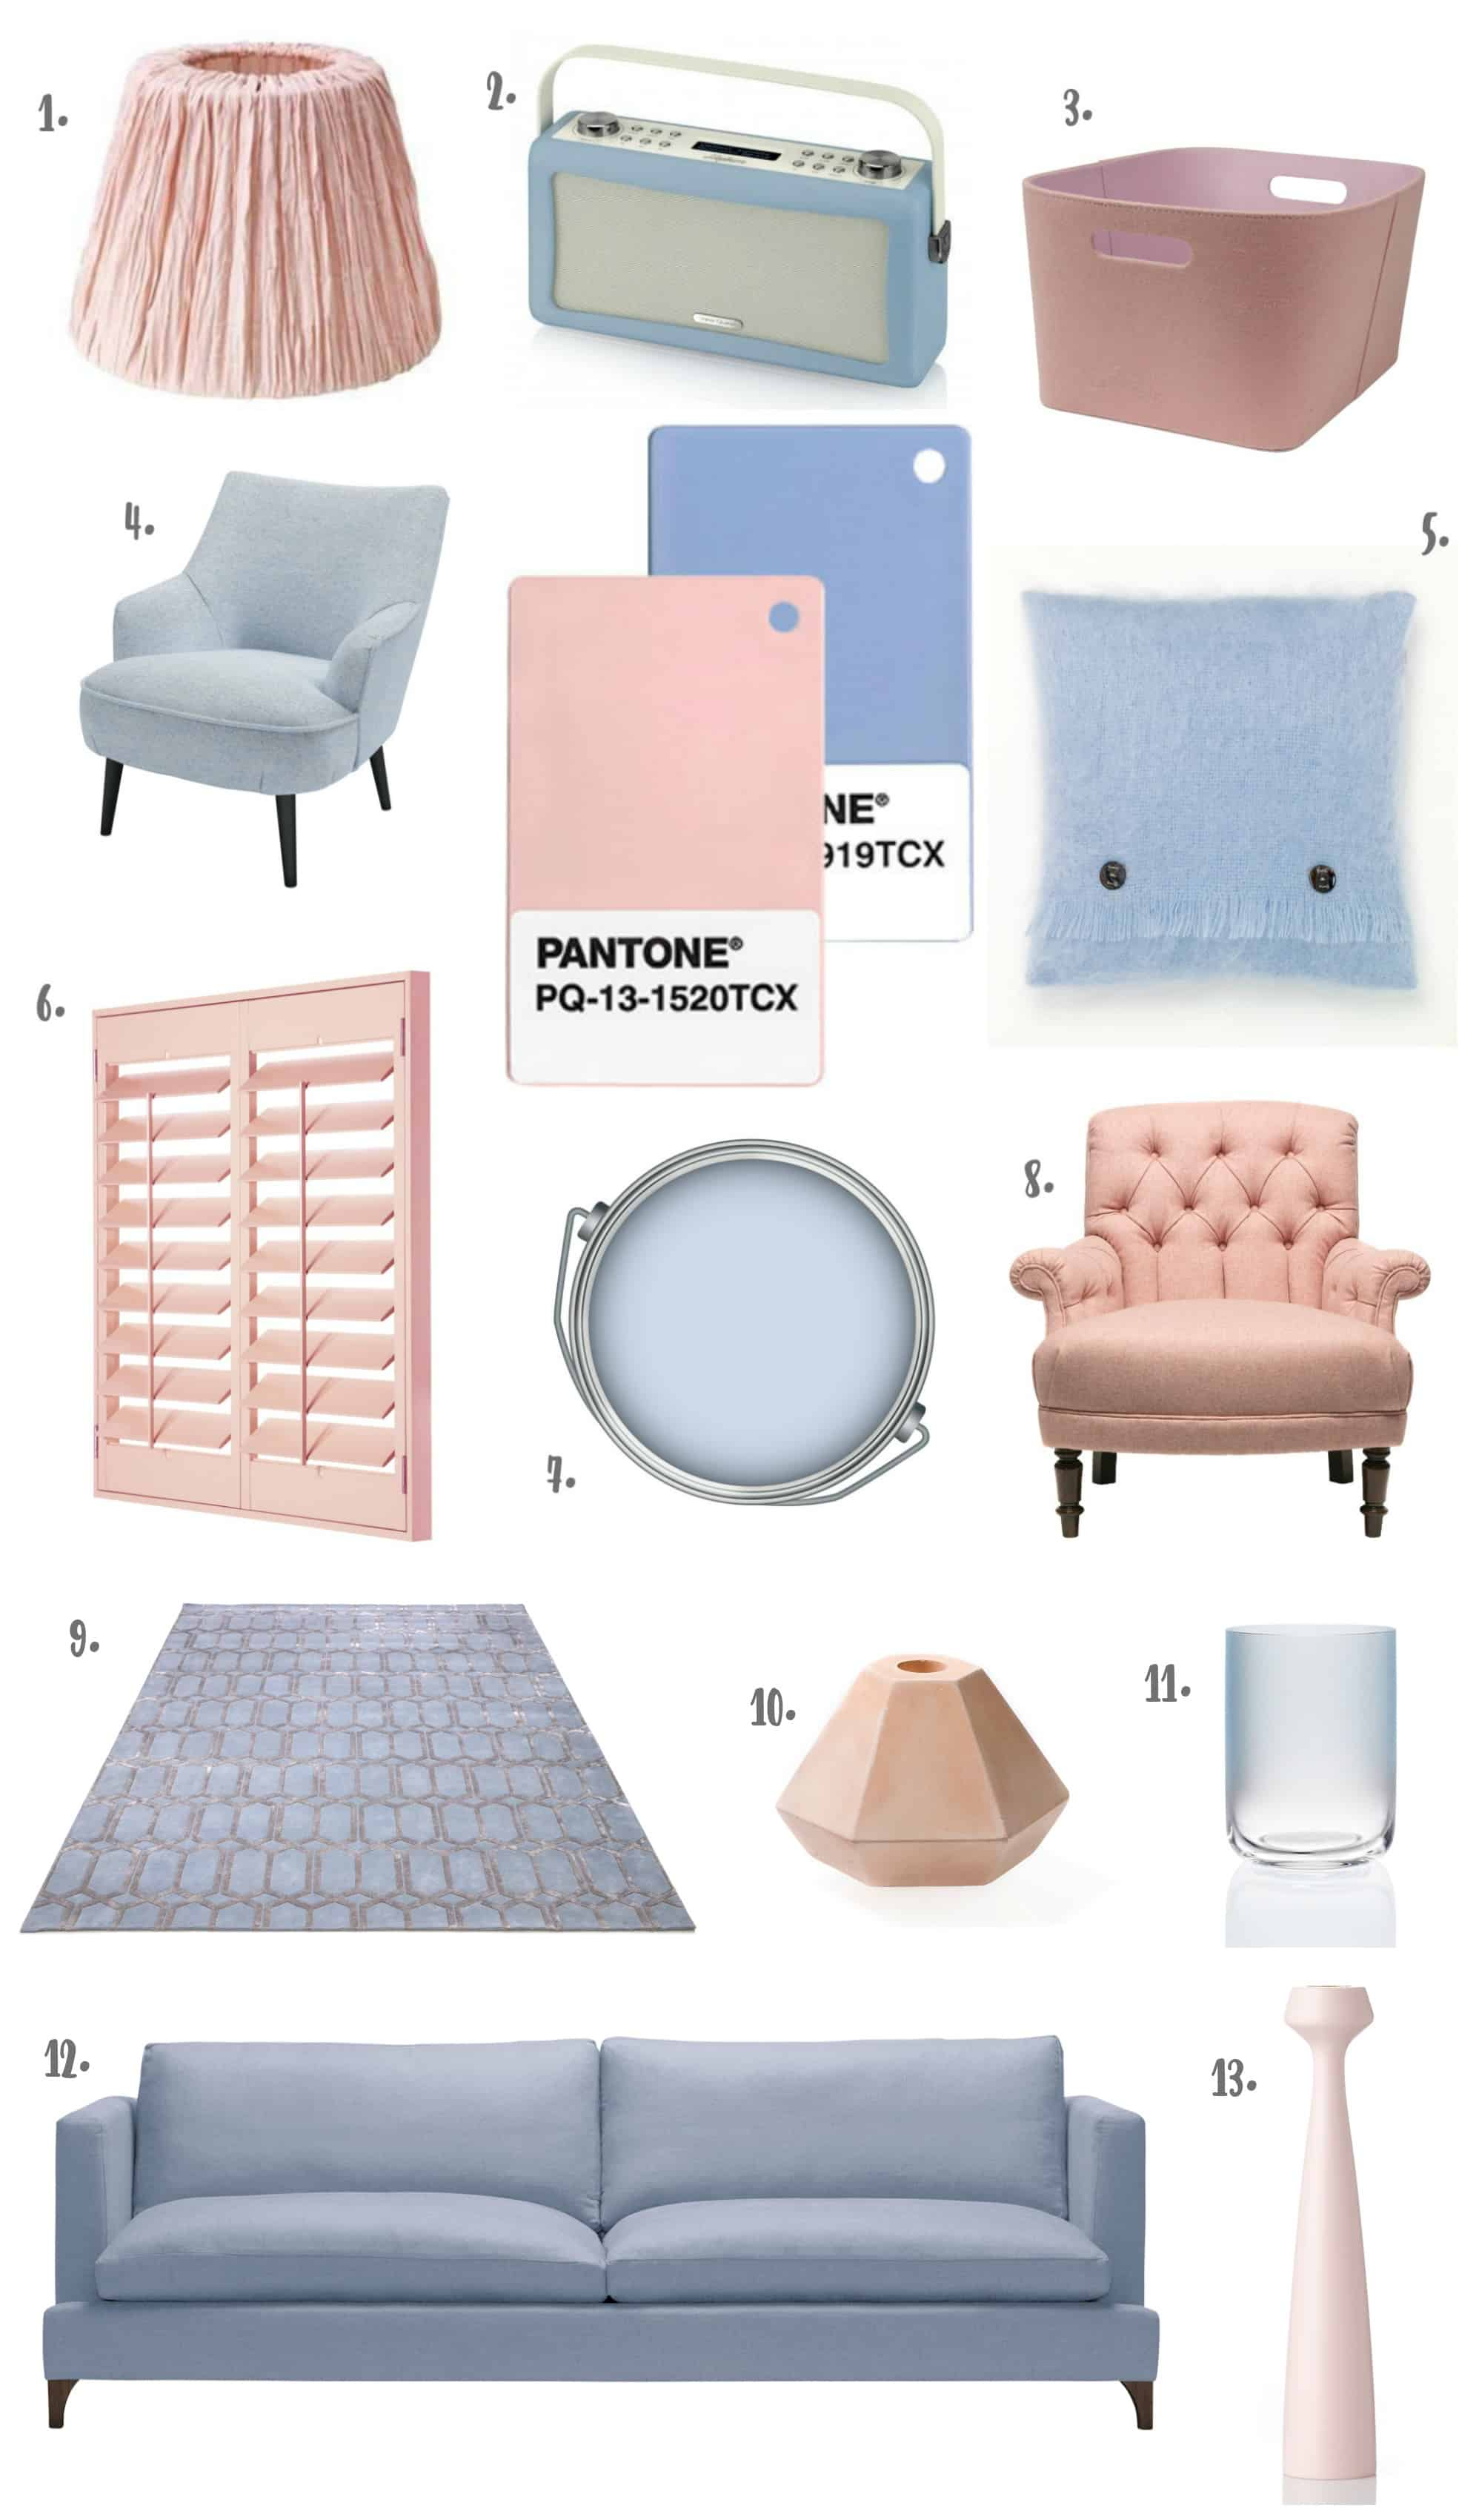 Pantone Colour of the Year 2016 Rose Quartz & Serenity - Products for the Livingroom